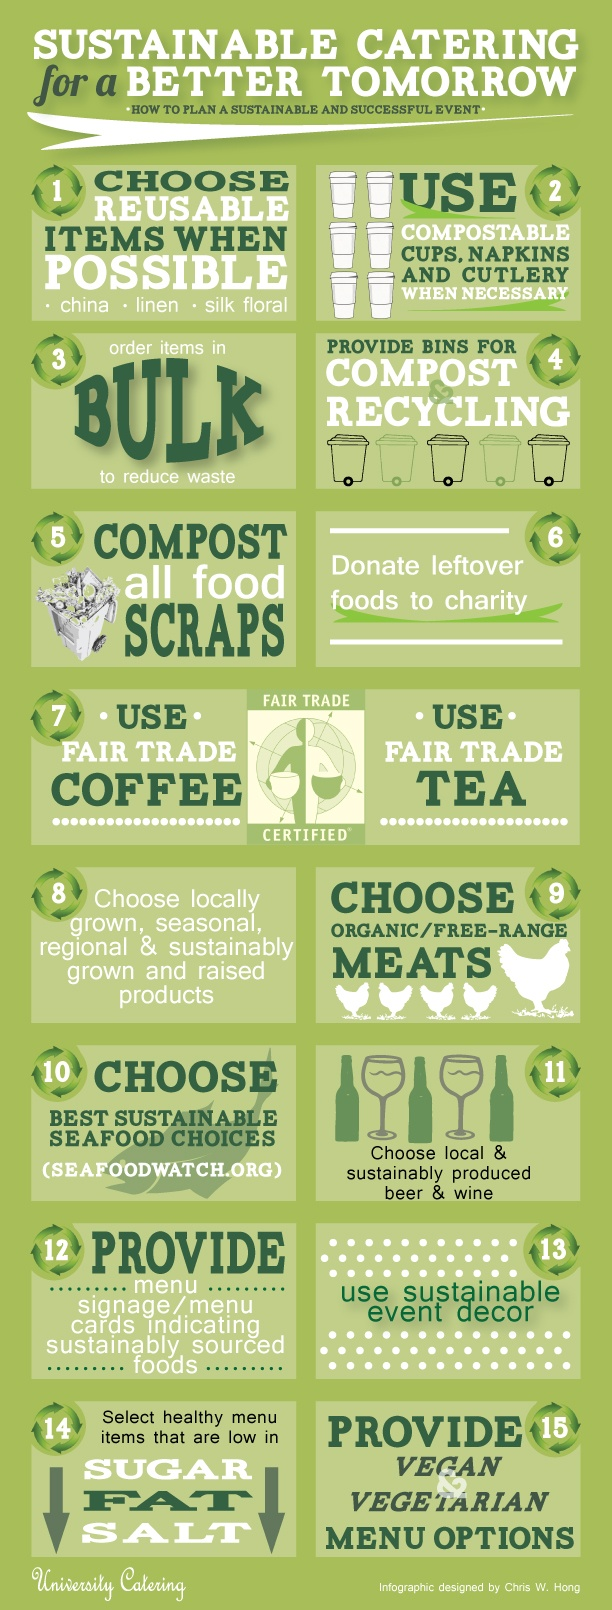 sustainable catering infographic how to plan a successful green event